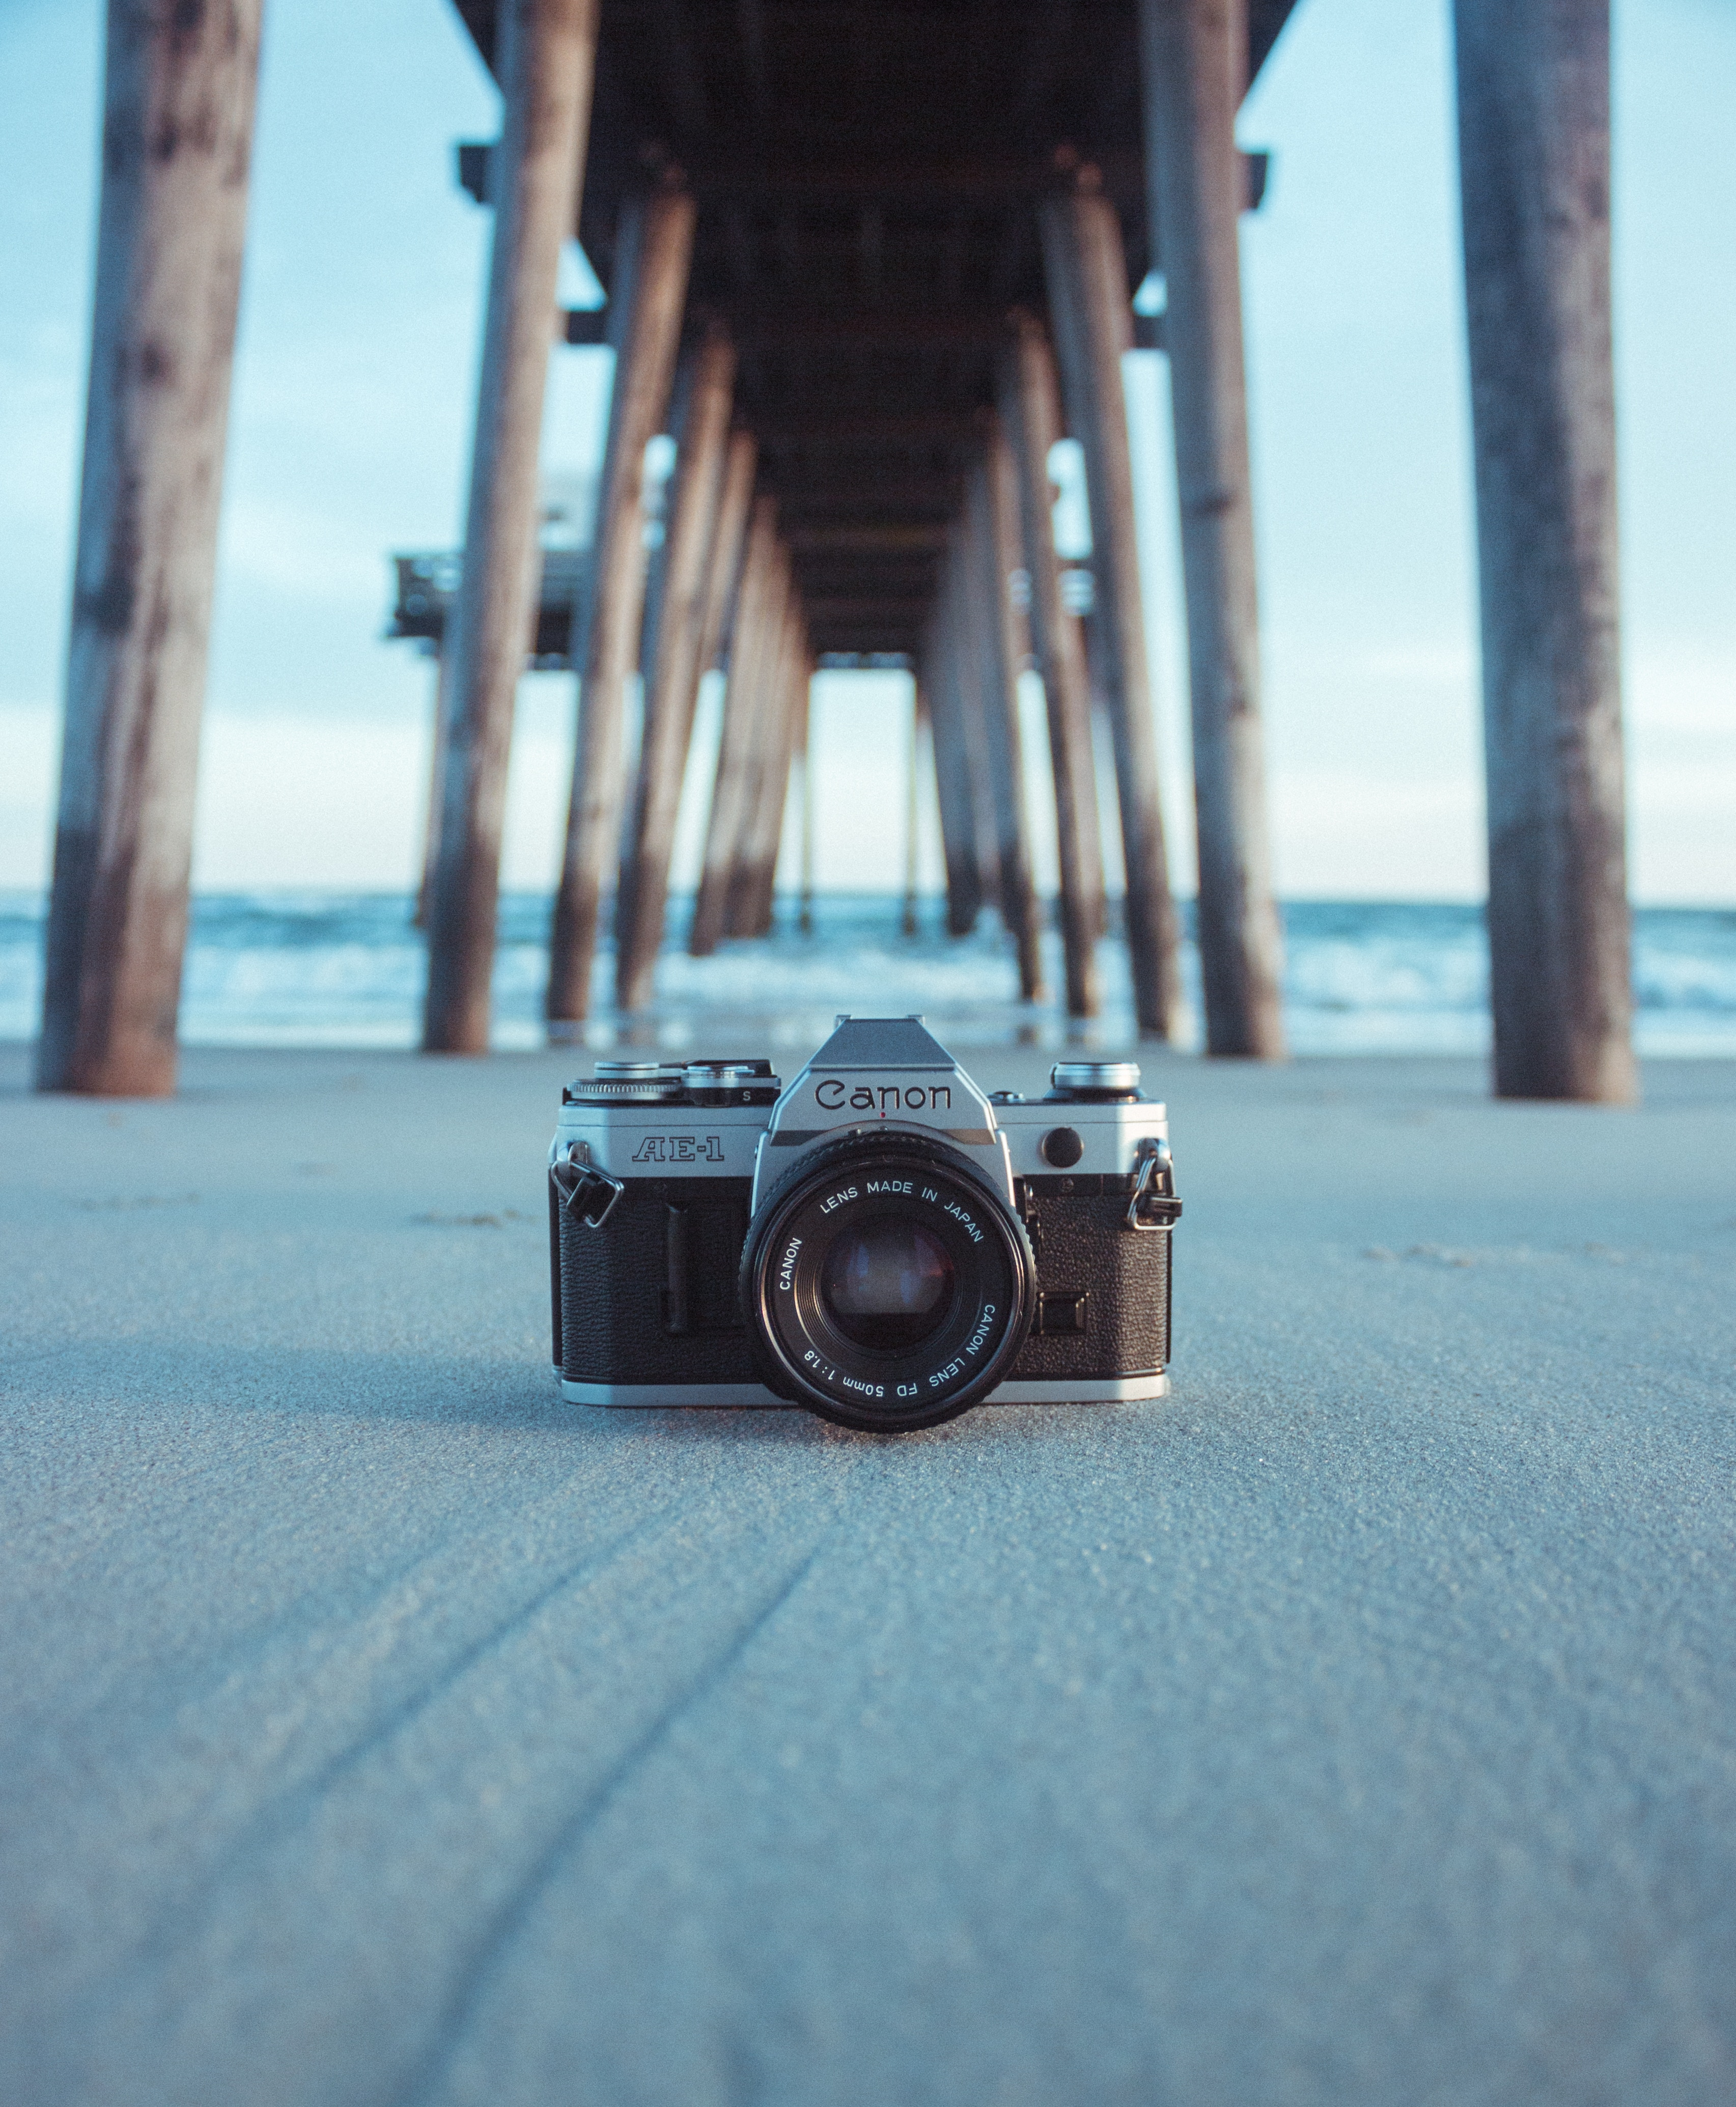 58866 download wallpaper Technologies, Technology, Camera, Pier, Sand, Blur, Smooth screensavers and pictures for free